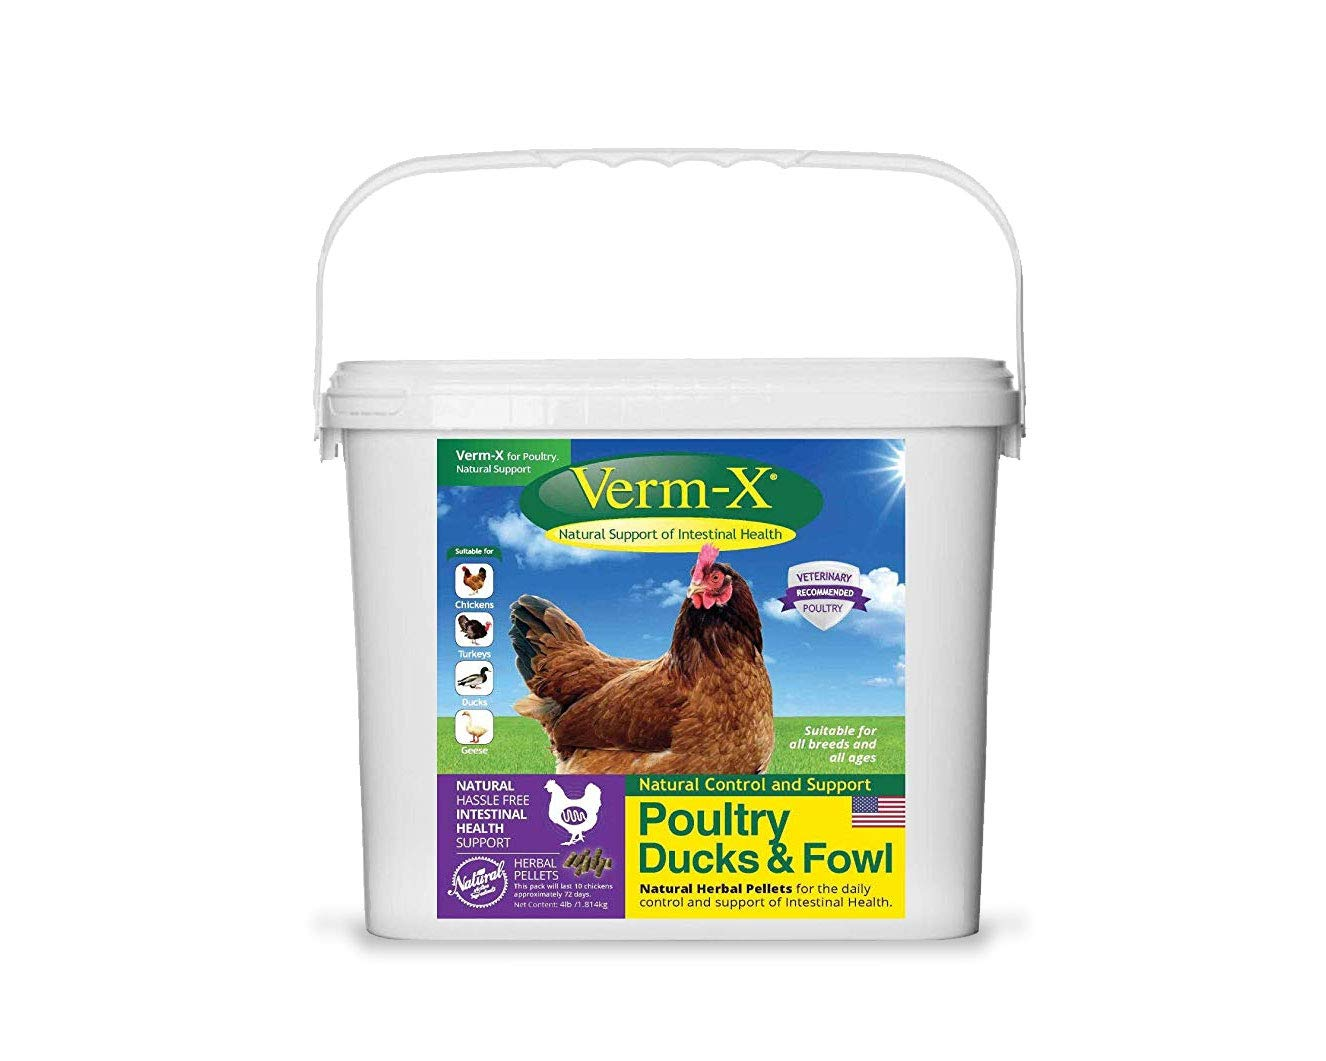 Verm-X Poultry Ducks & Fowl Natural Support Intestinal Health 4Lbs by Verm-X